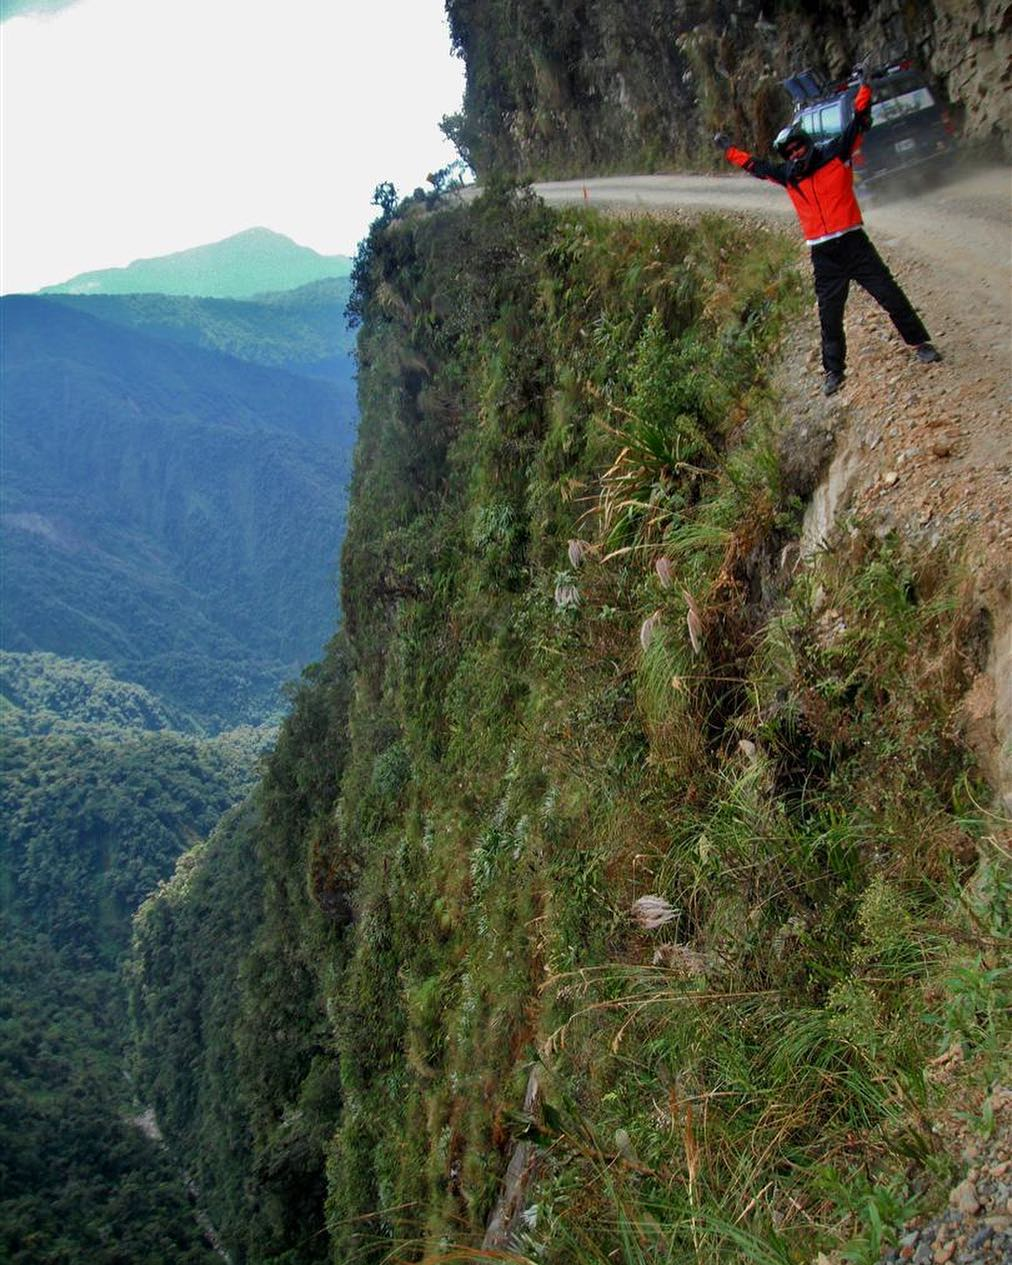 15 - The death road in Bolivia